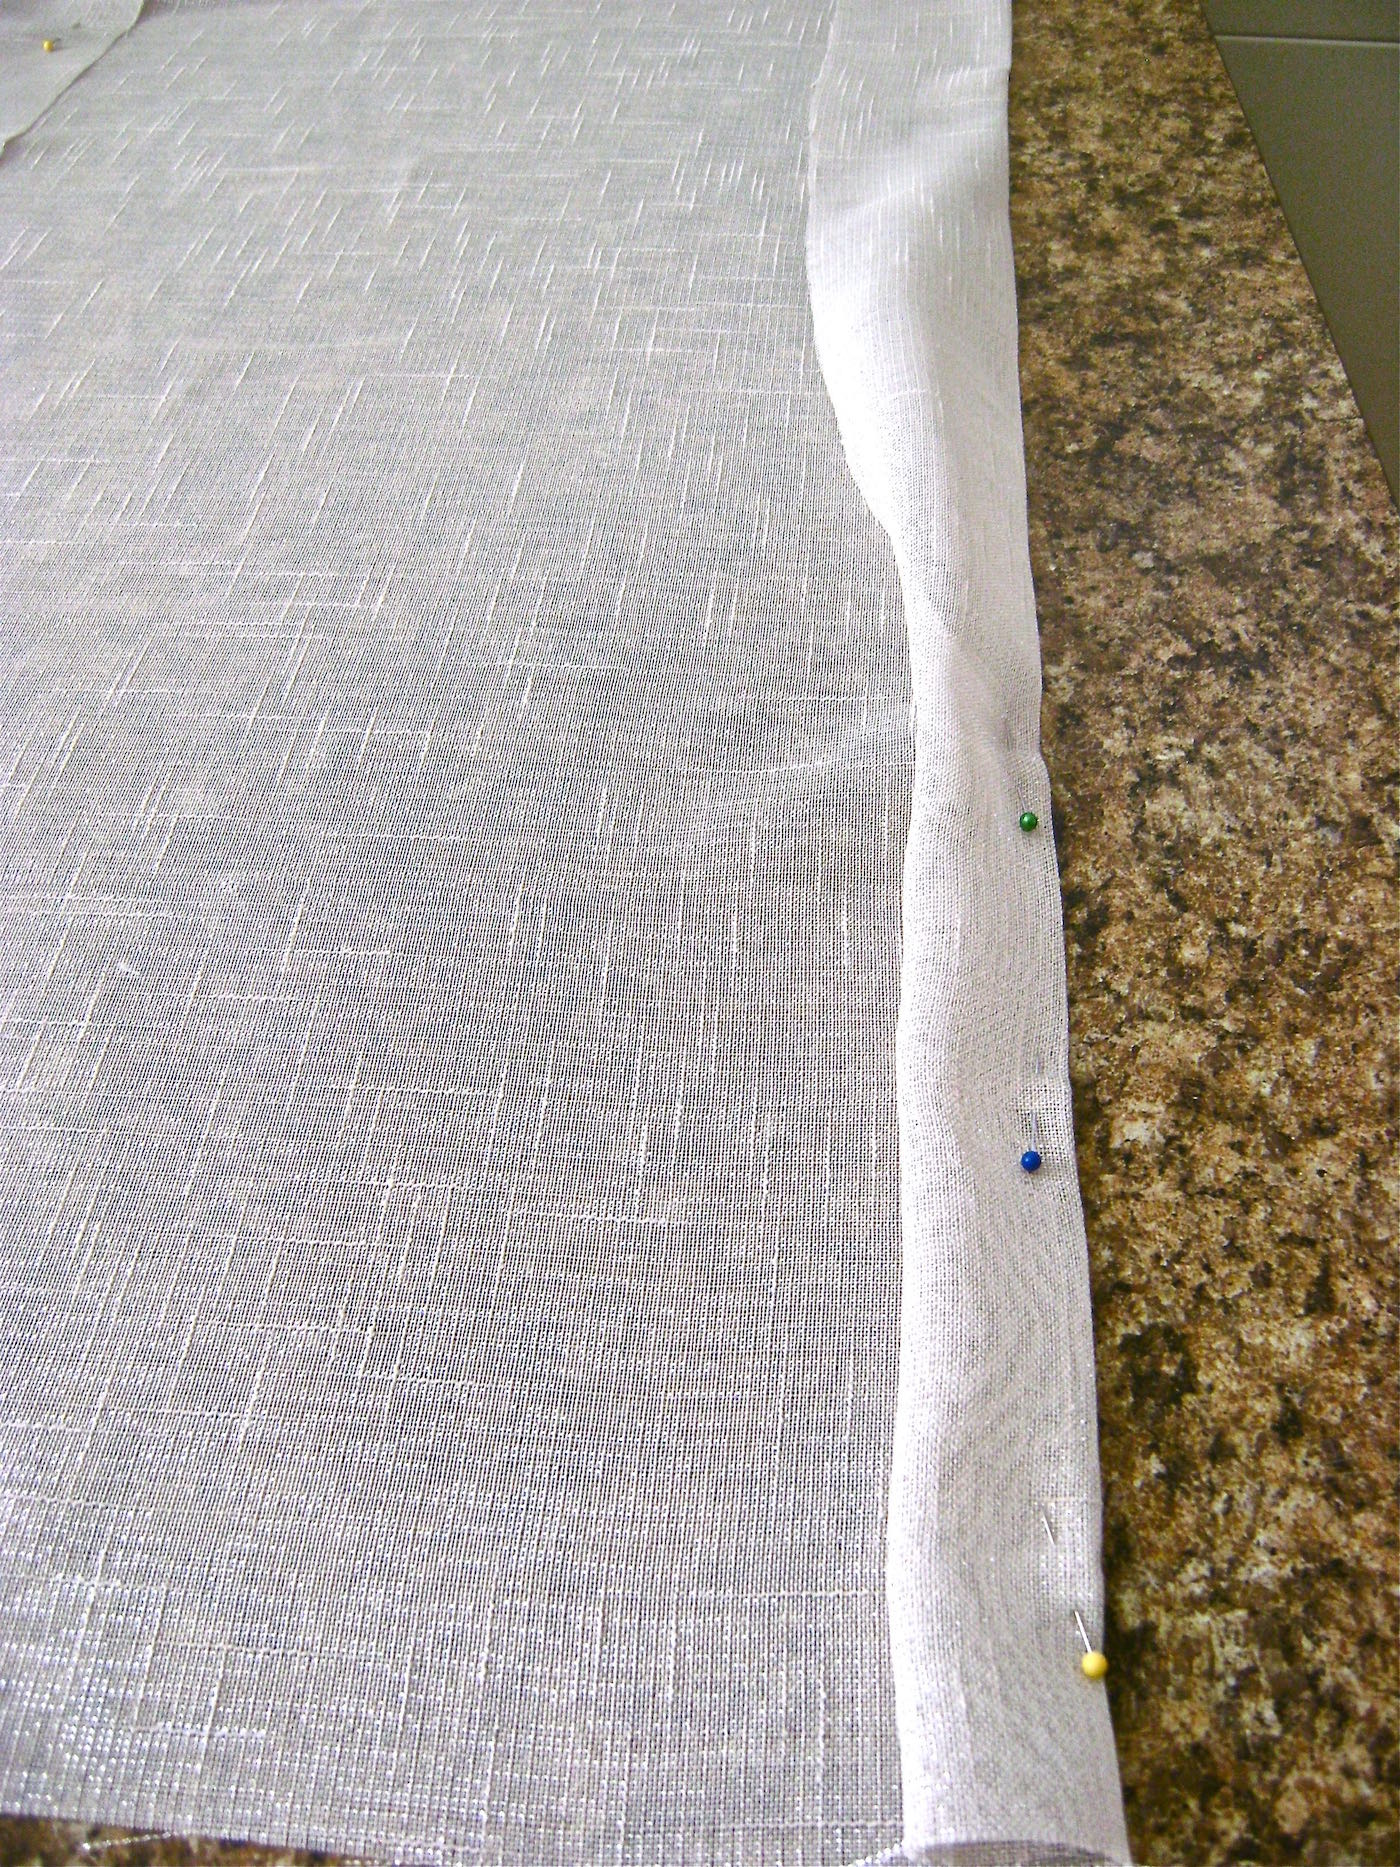 step 3 - Fold the raw edges into the pressed crease on each side then press in place.